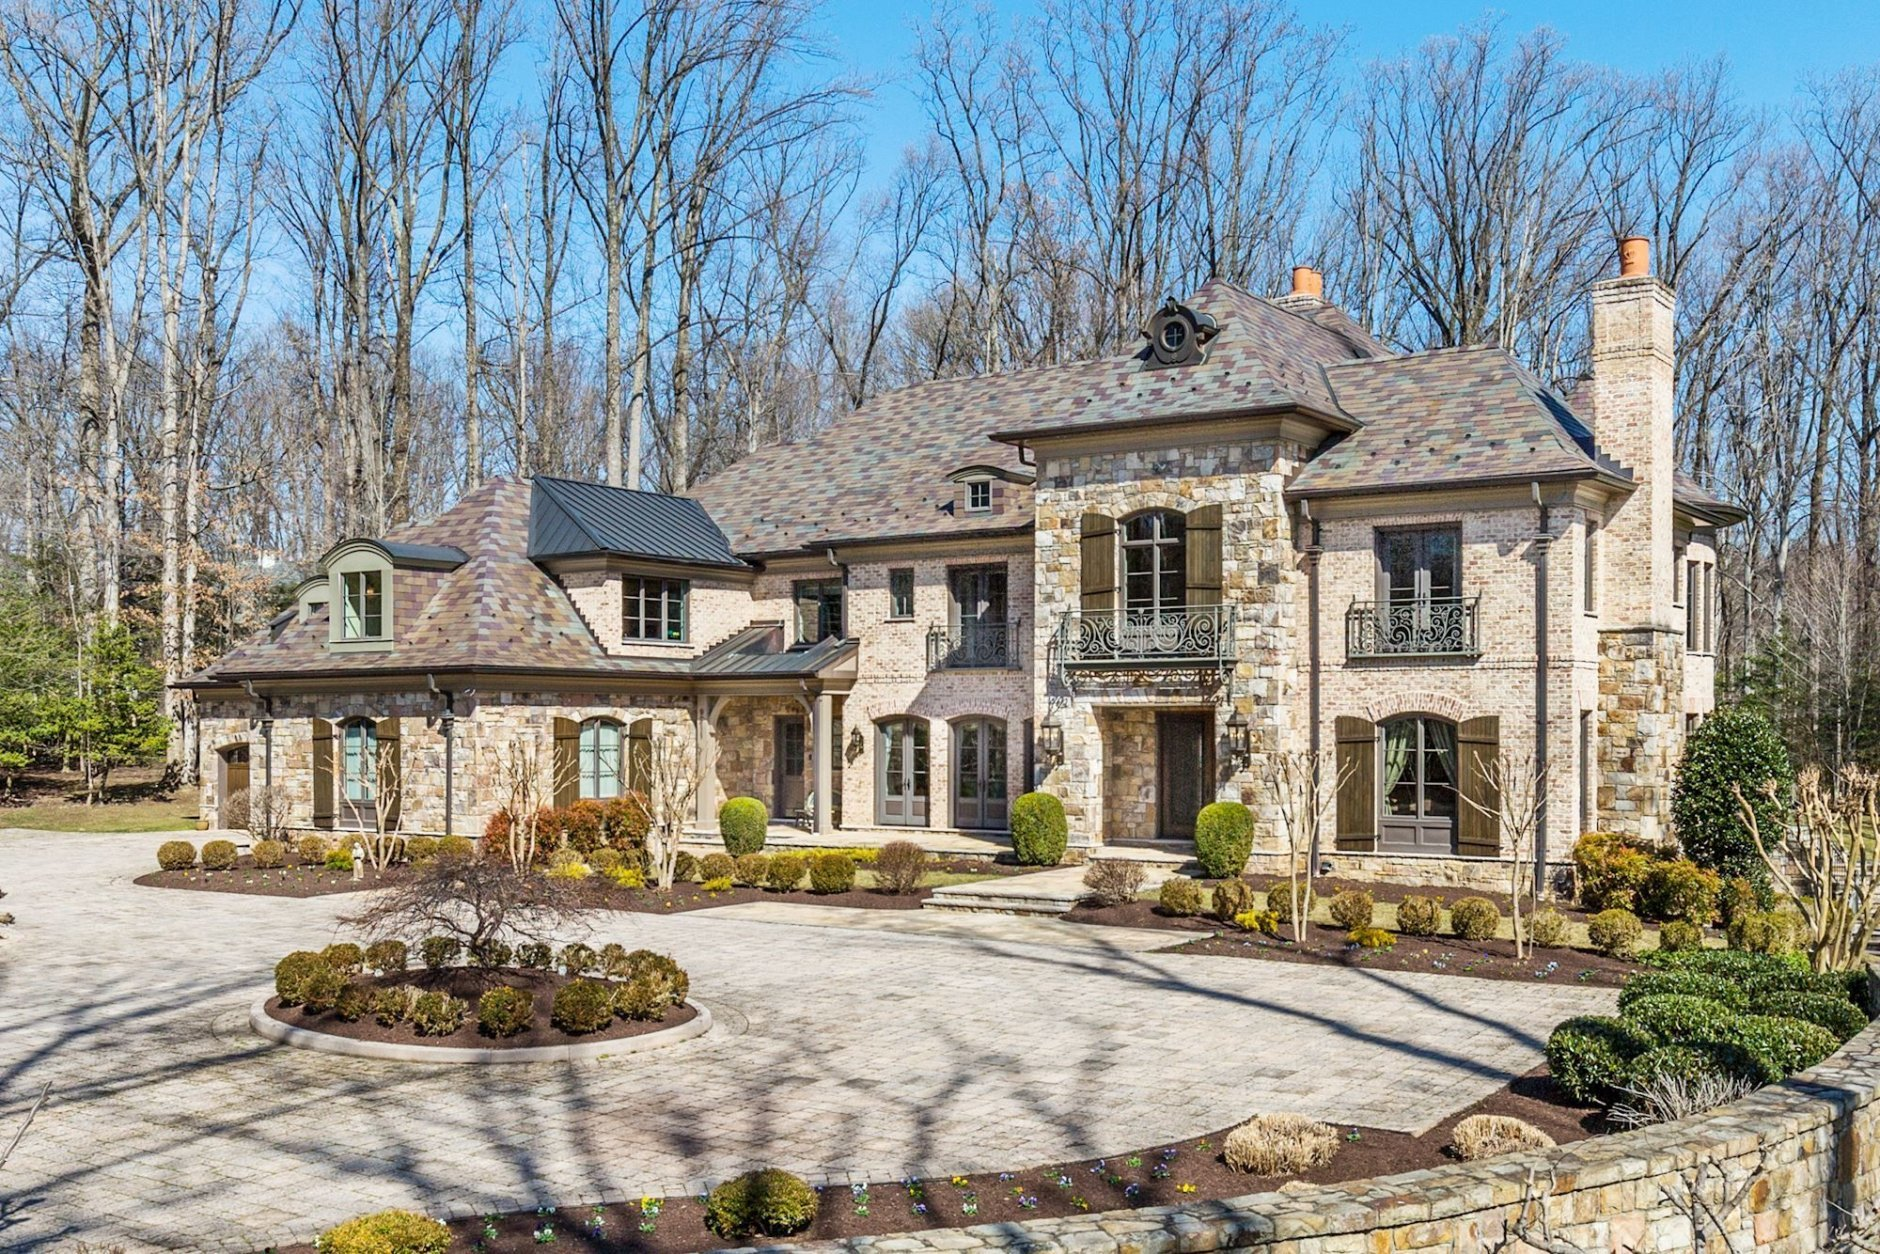 Tammy Darvish's three-level, single-family home sits on 2 acres at 9811 Avenel Farm Drive. in Potomac, Maryland. (Courtesy Washington Fine Properties)